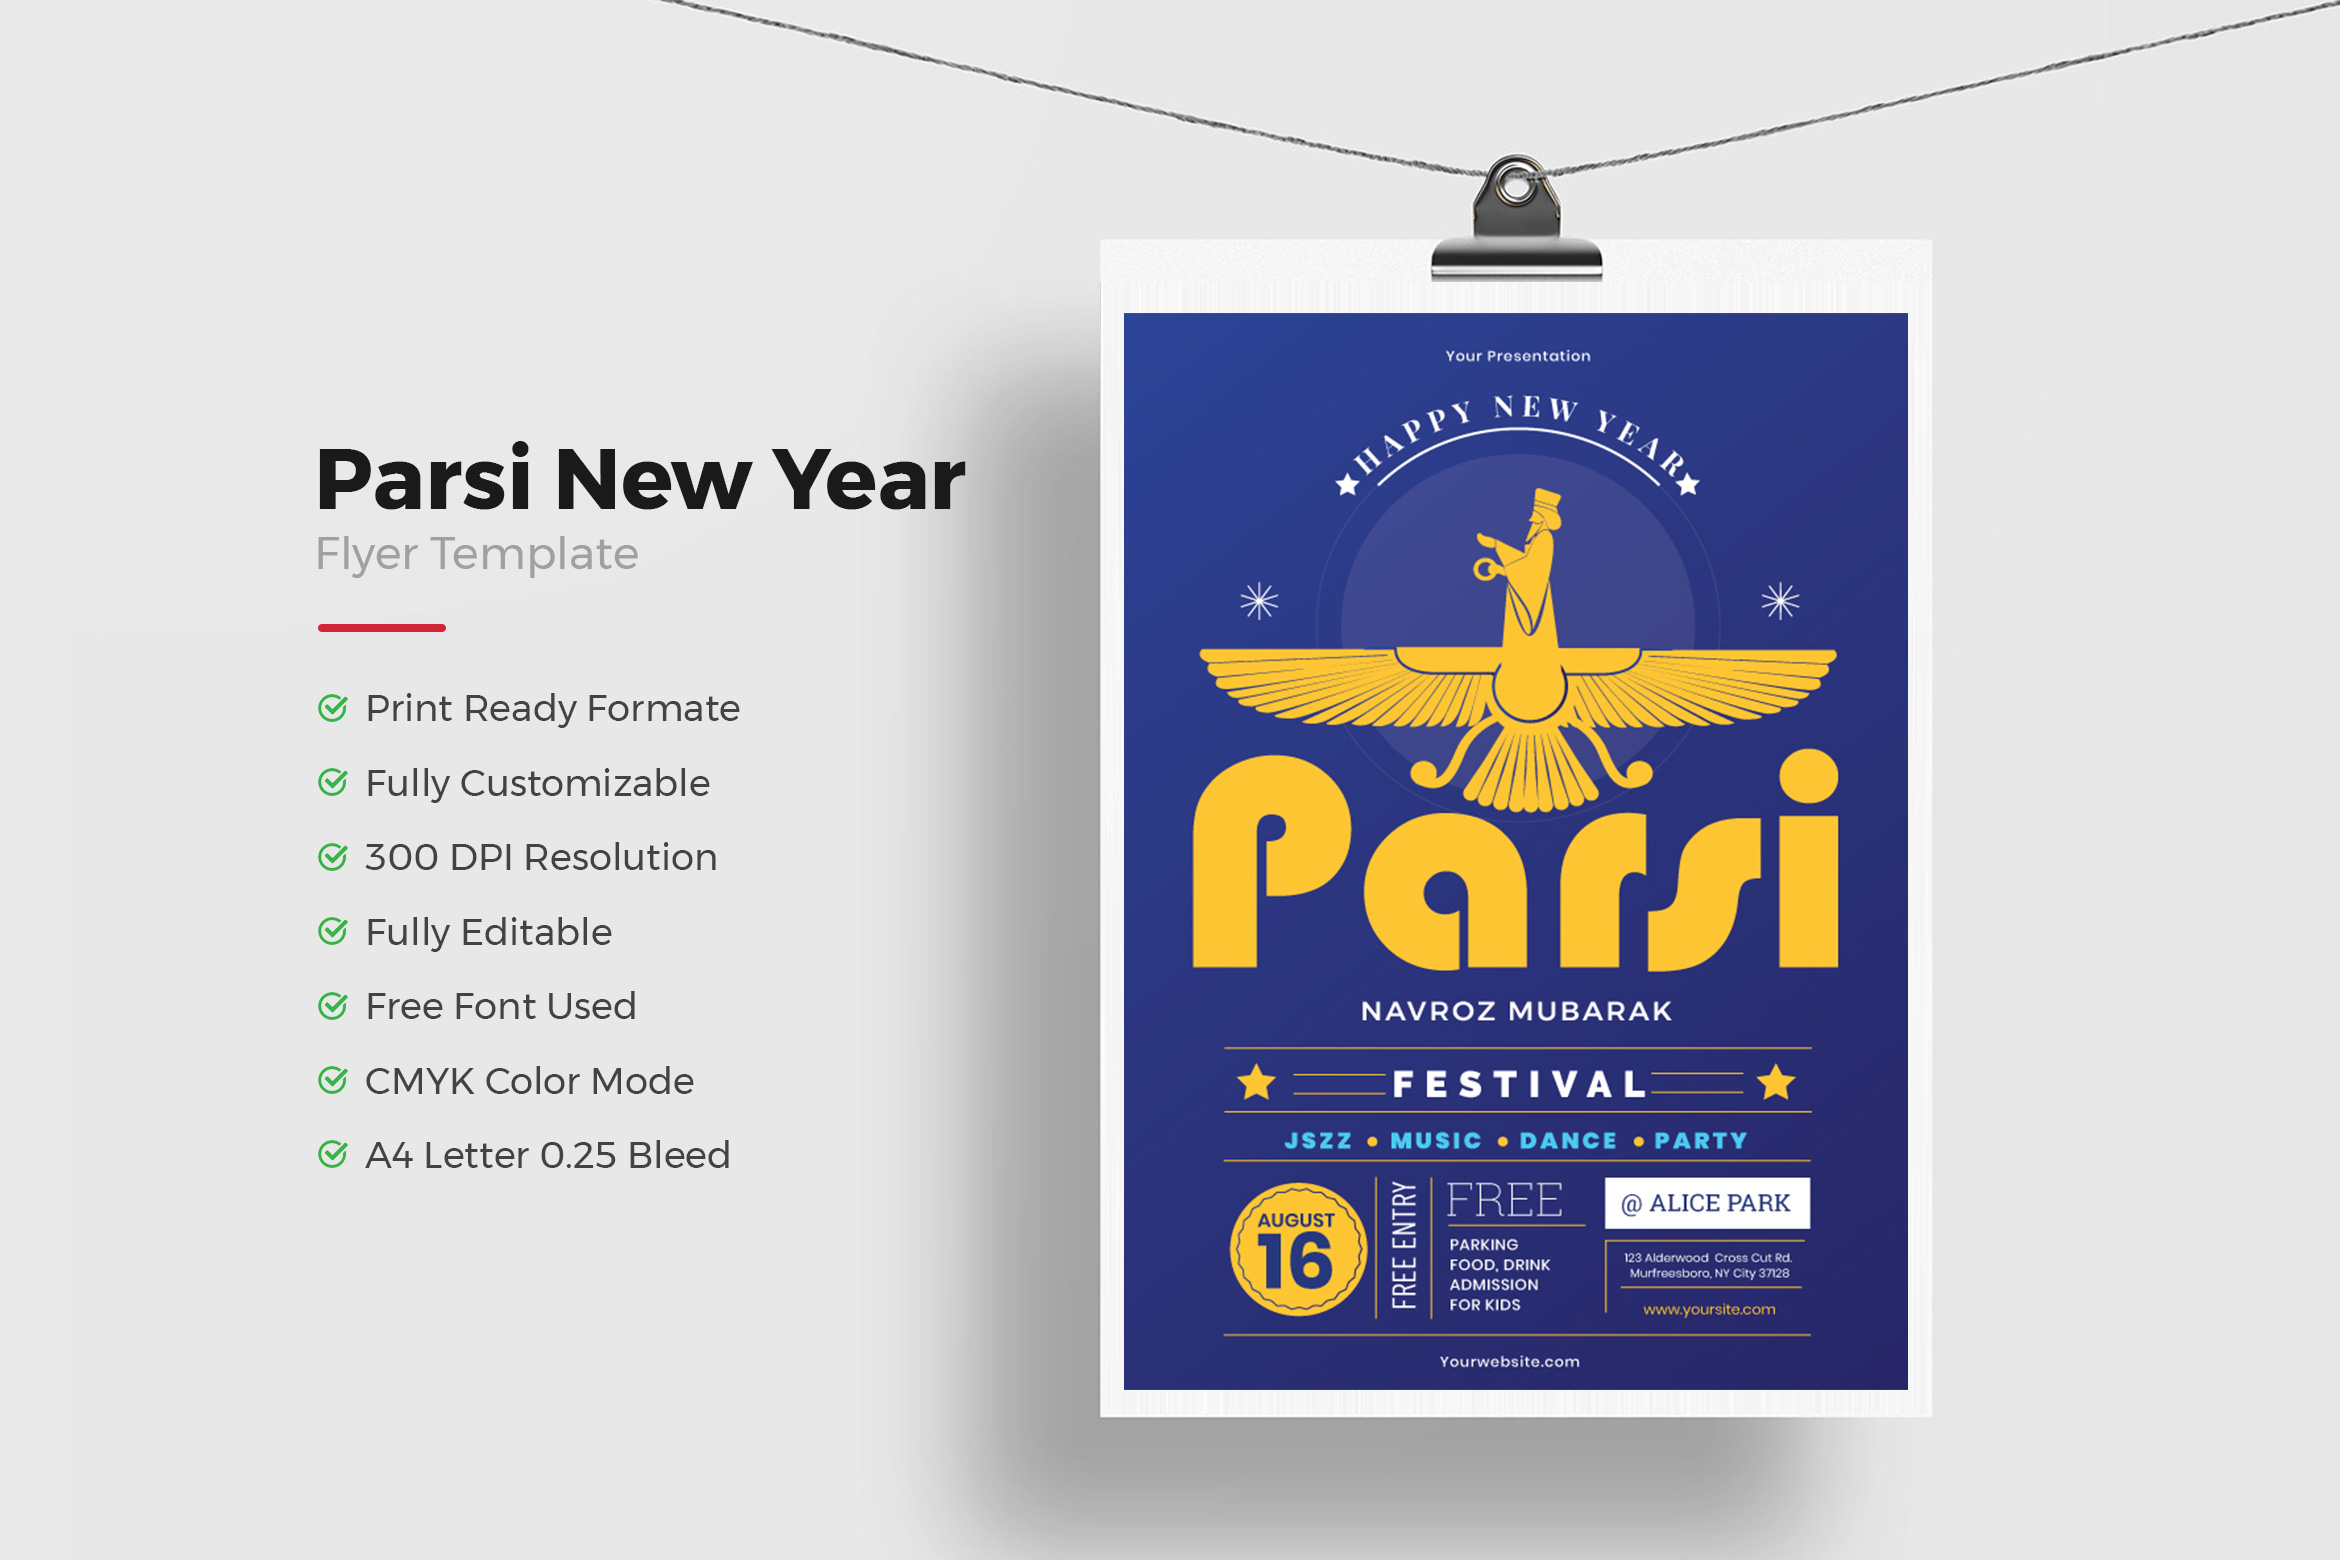 Parsi New Year Flyer Template